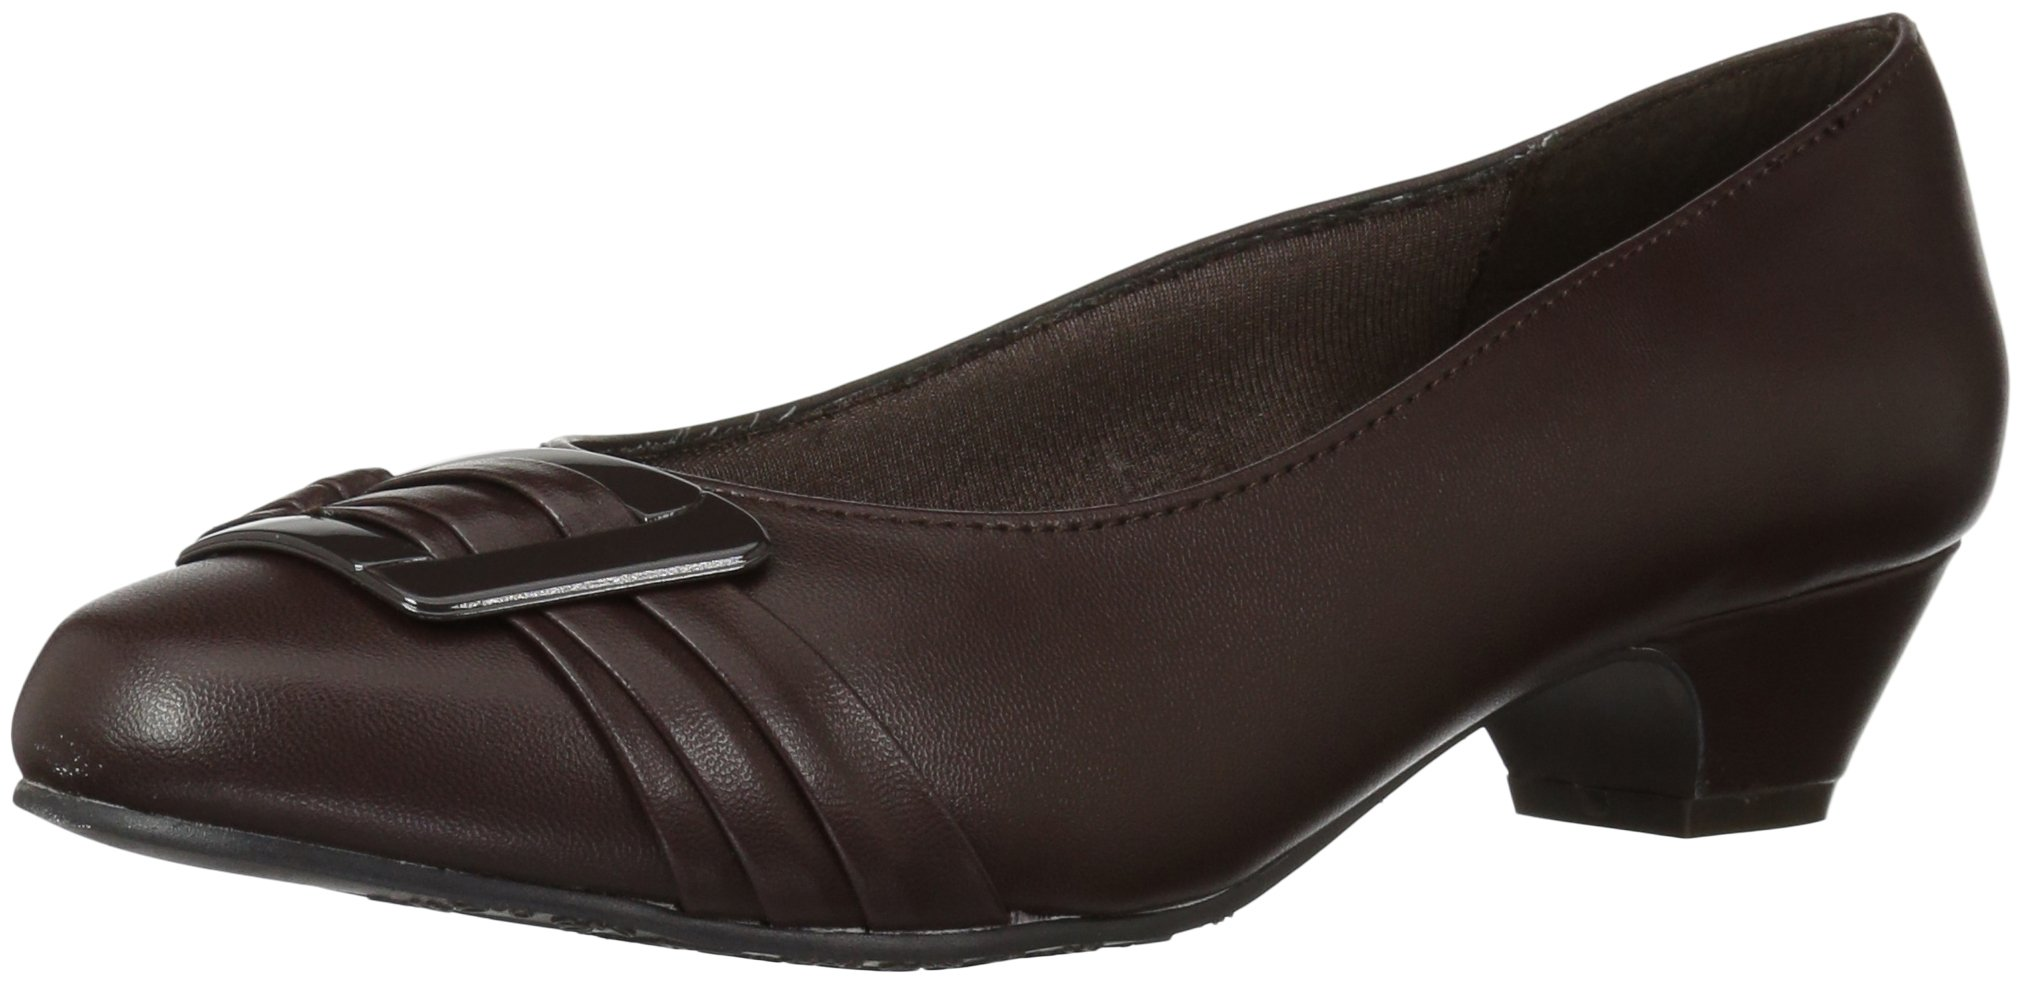 Soft Style by Hush Puppies Women's Pleats Be with You Dress Pump, Dark Brown, 7 N US